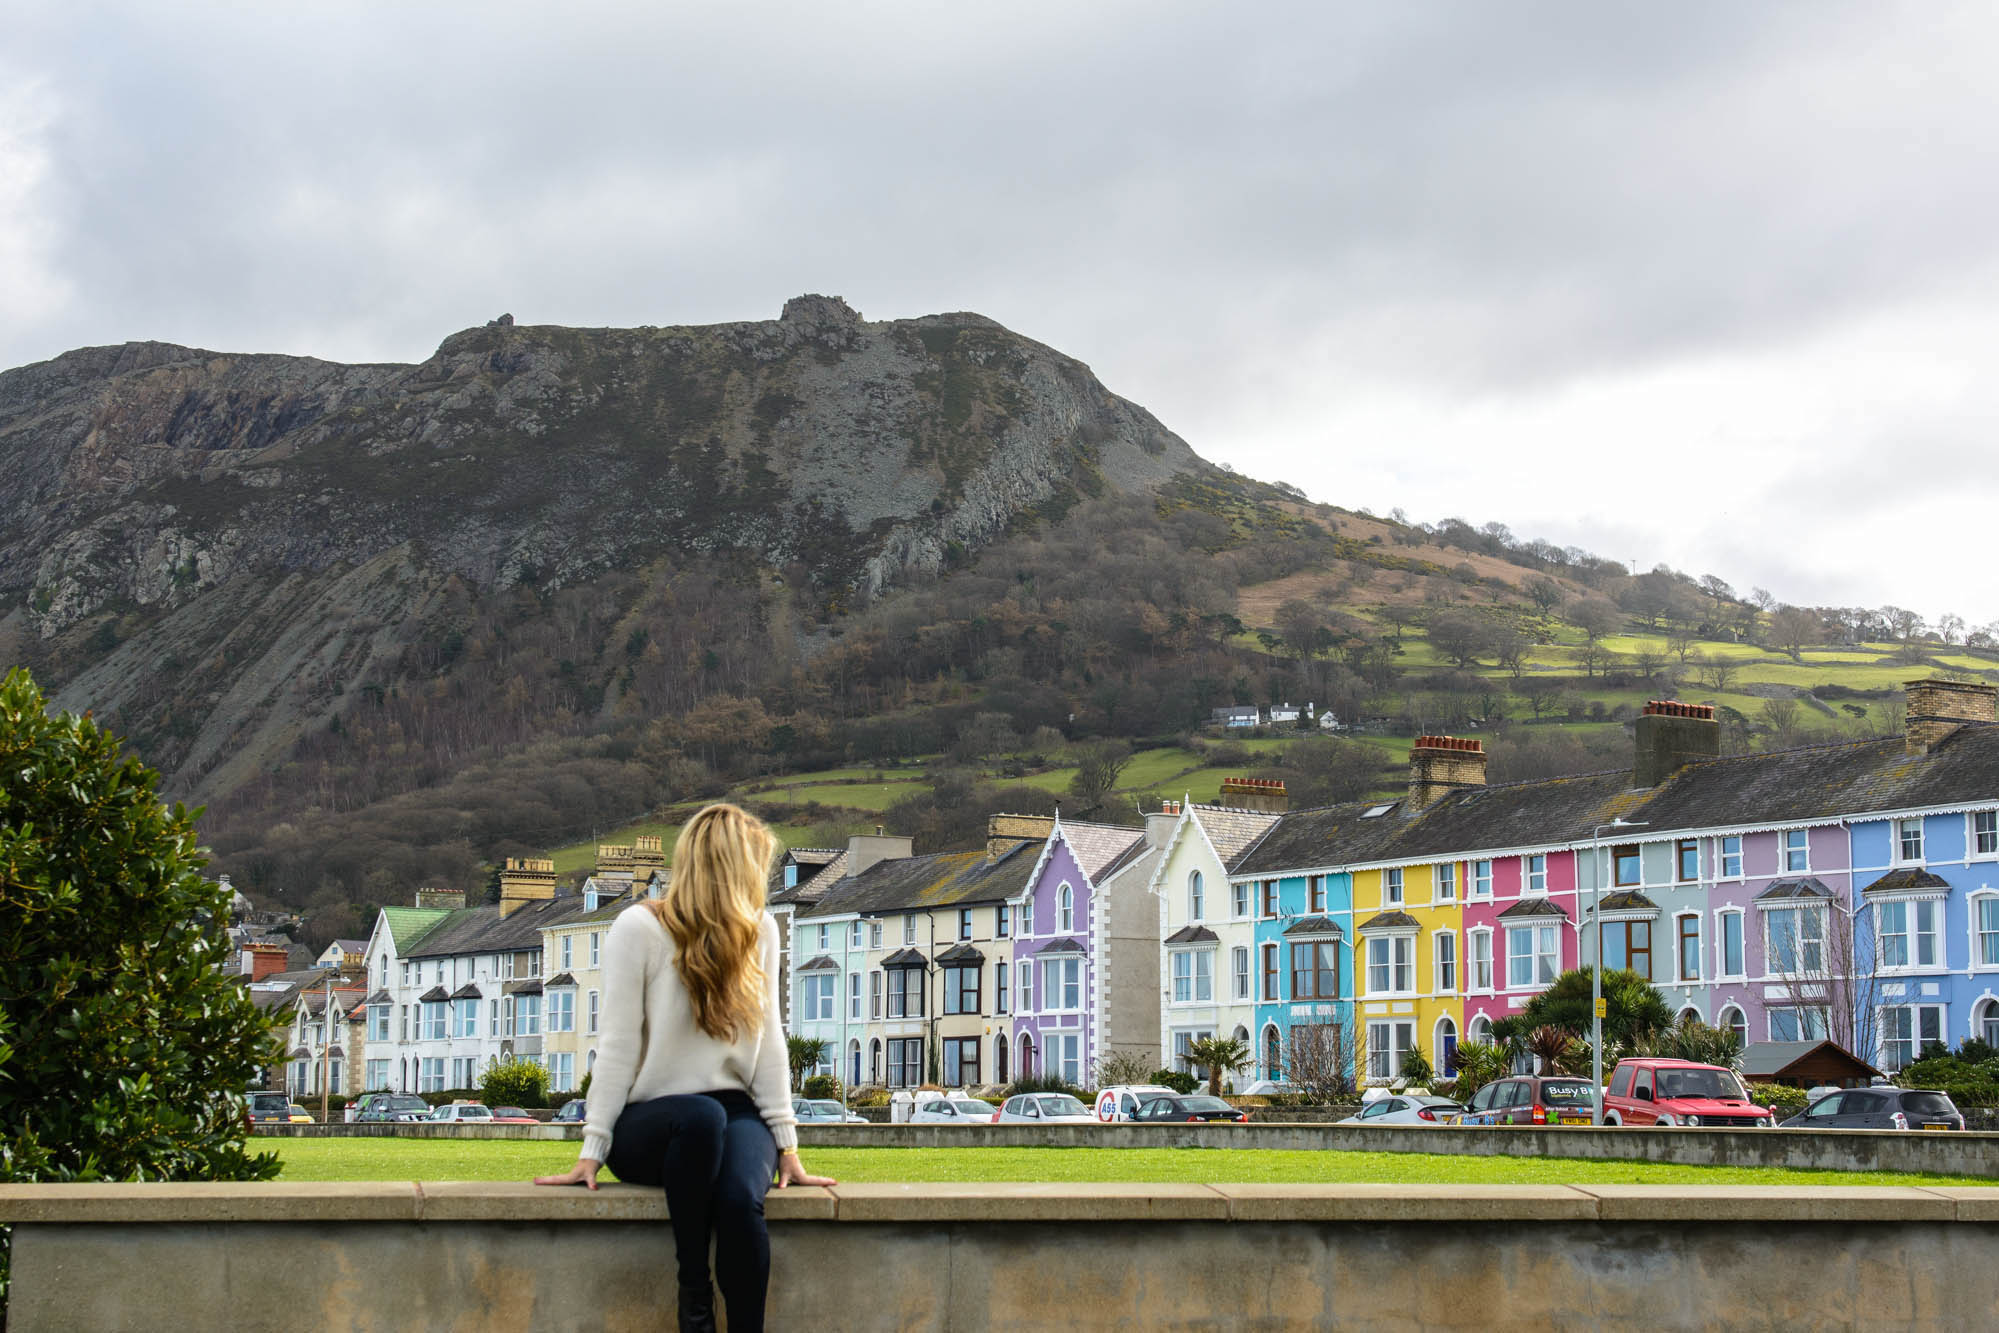 Lesley Murphy traveling in Wales, United Kingdom